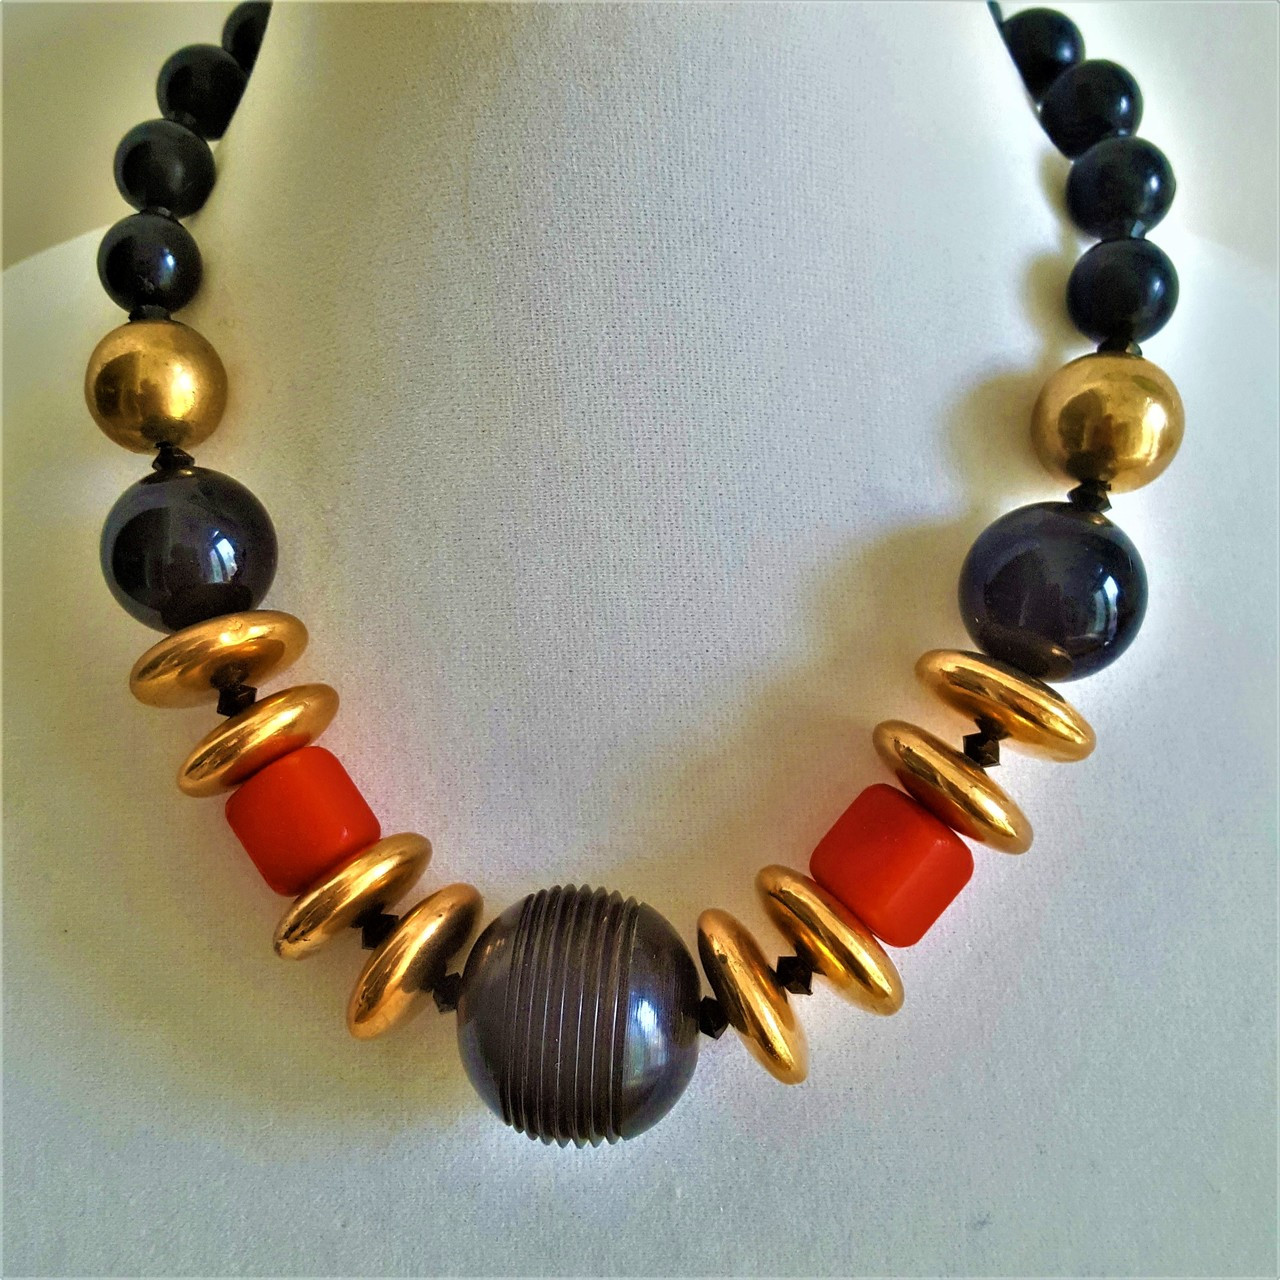 Large Black Carved Bone Center With Gold Discs And And Bright Red Accents 85 Lois Becker Jewelry